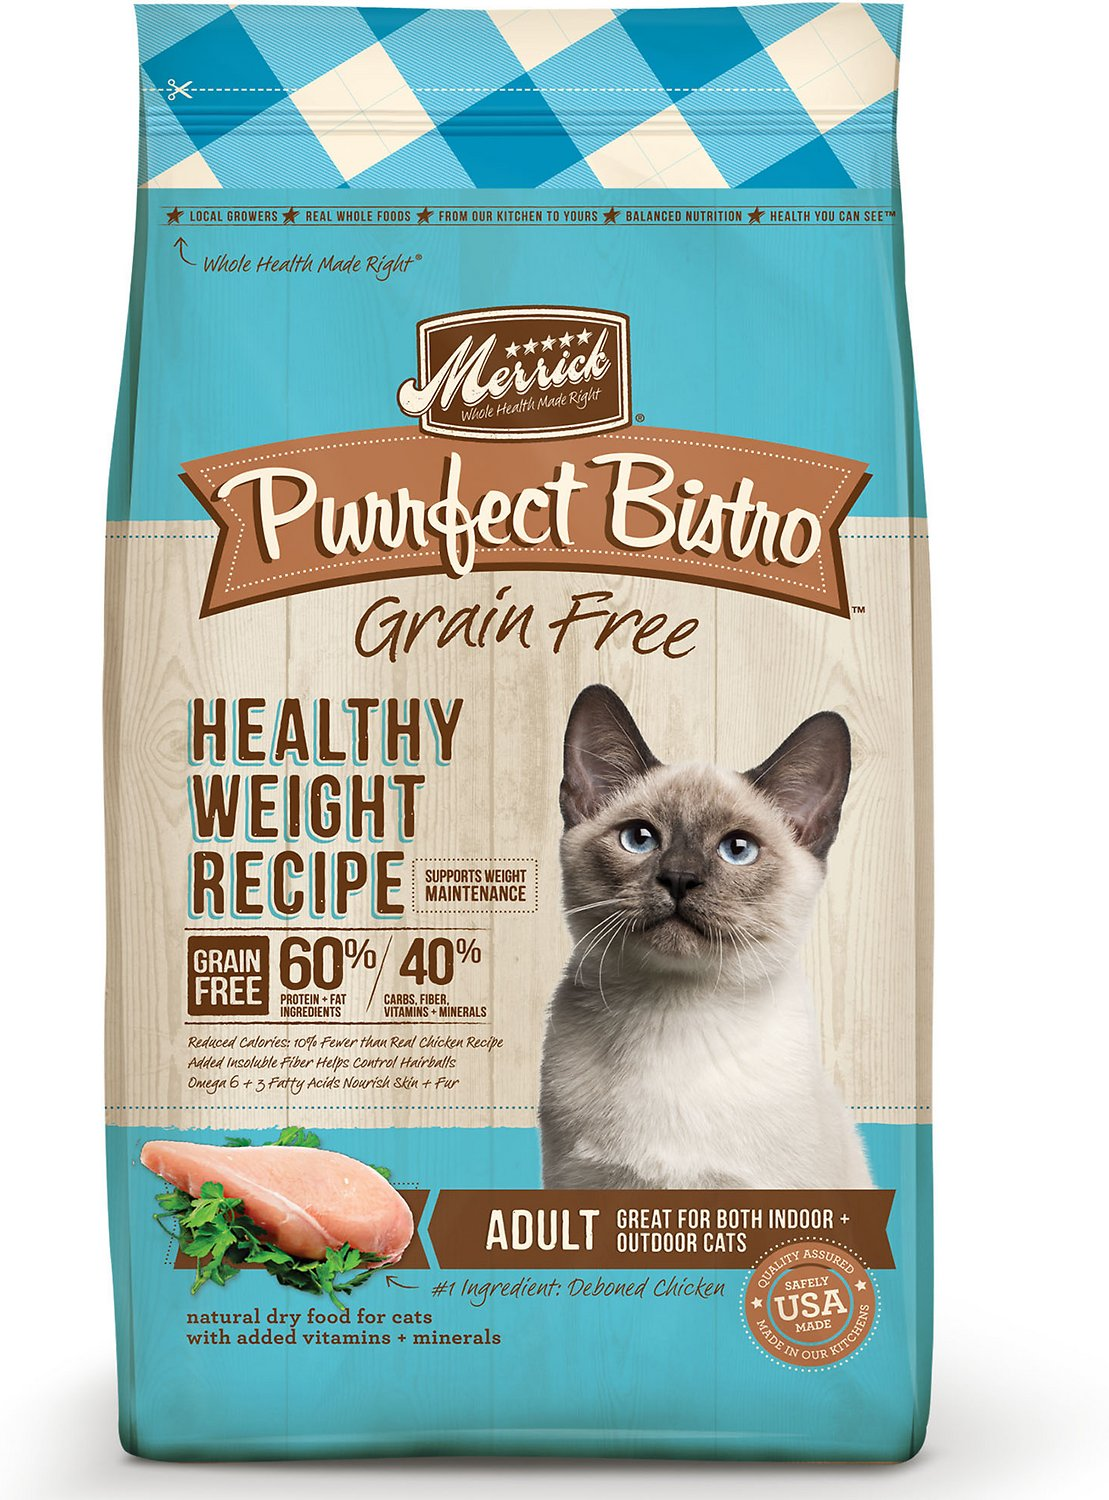 Merrick Purrfect Bistro Grain-Free Healthy Weight Recipe Dry Cat Food Image